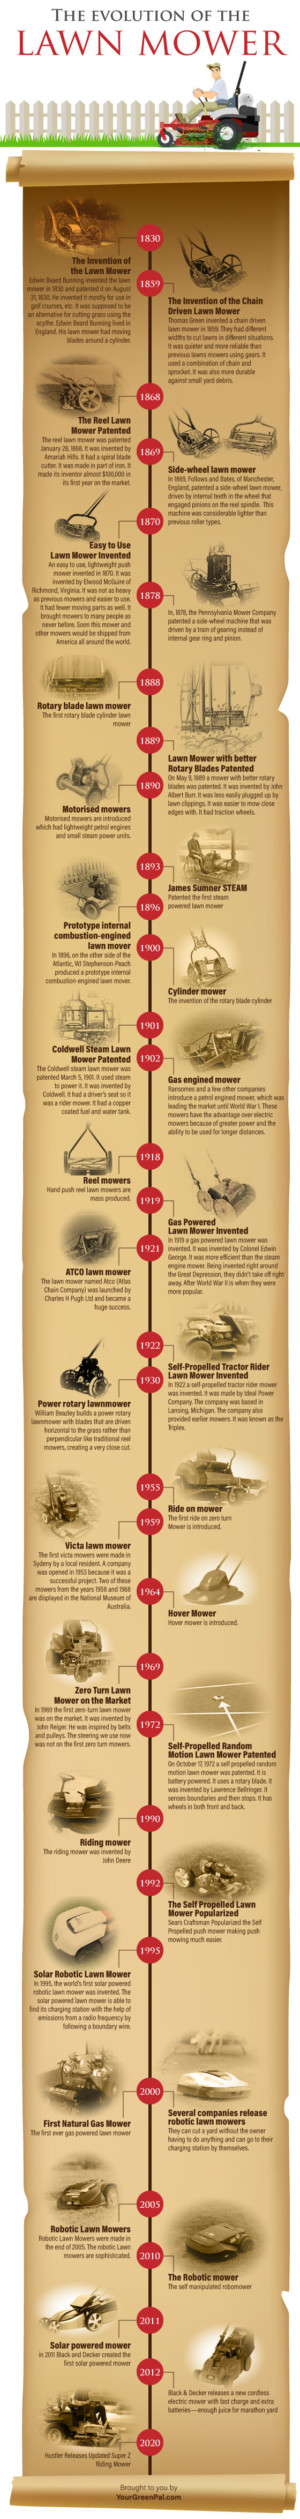 The Evolution of the Lawn Mower